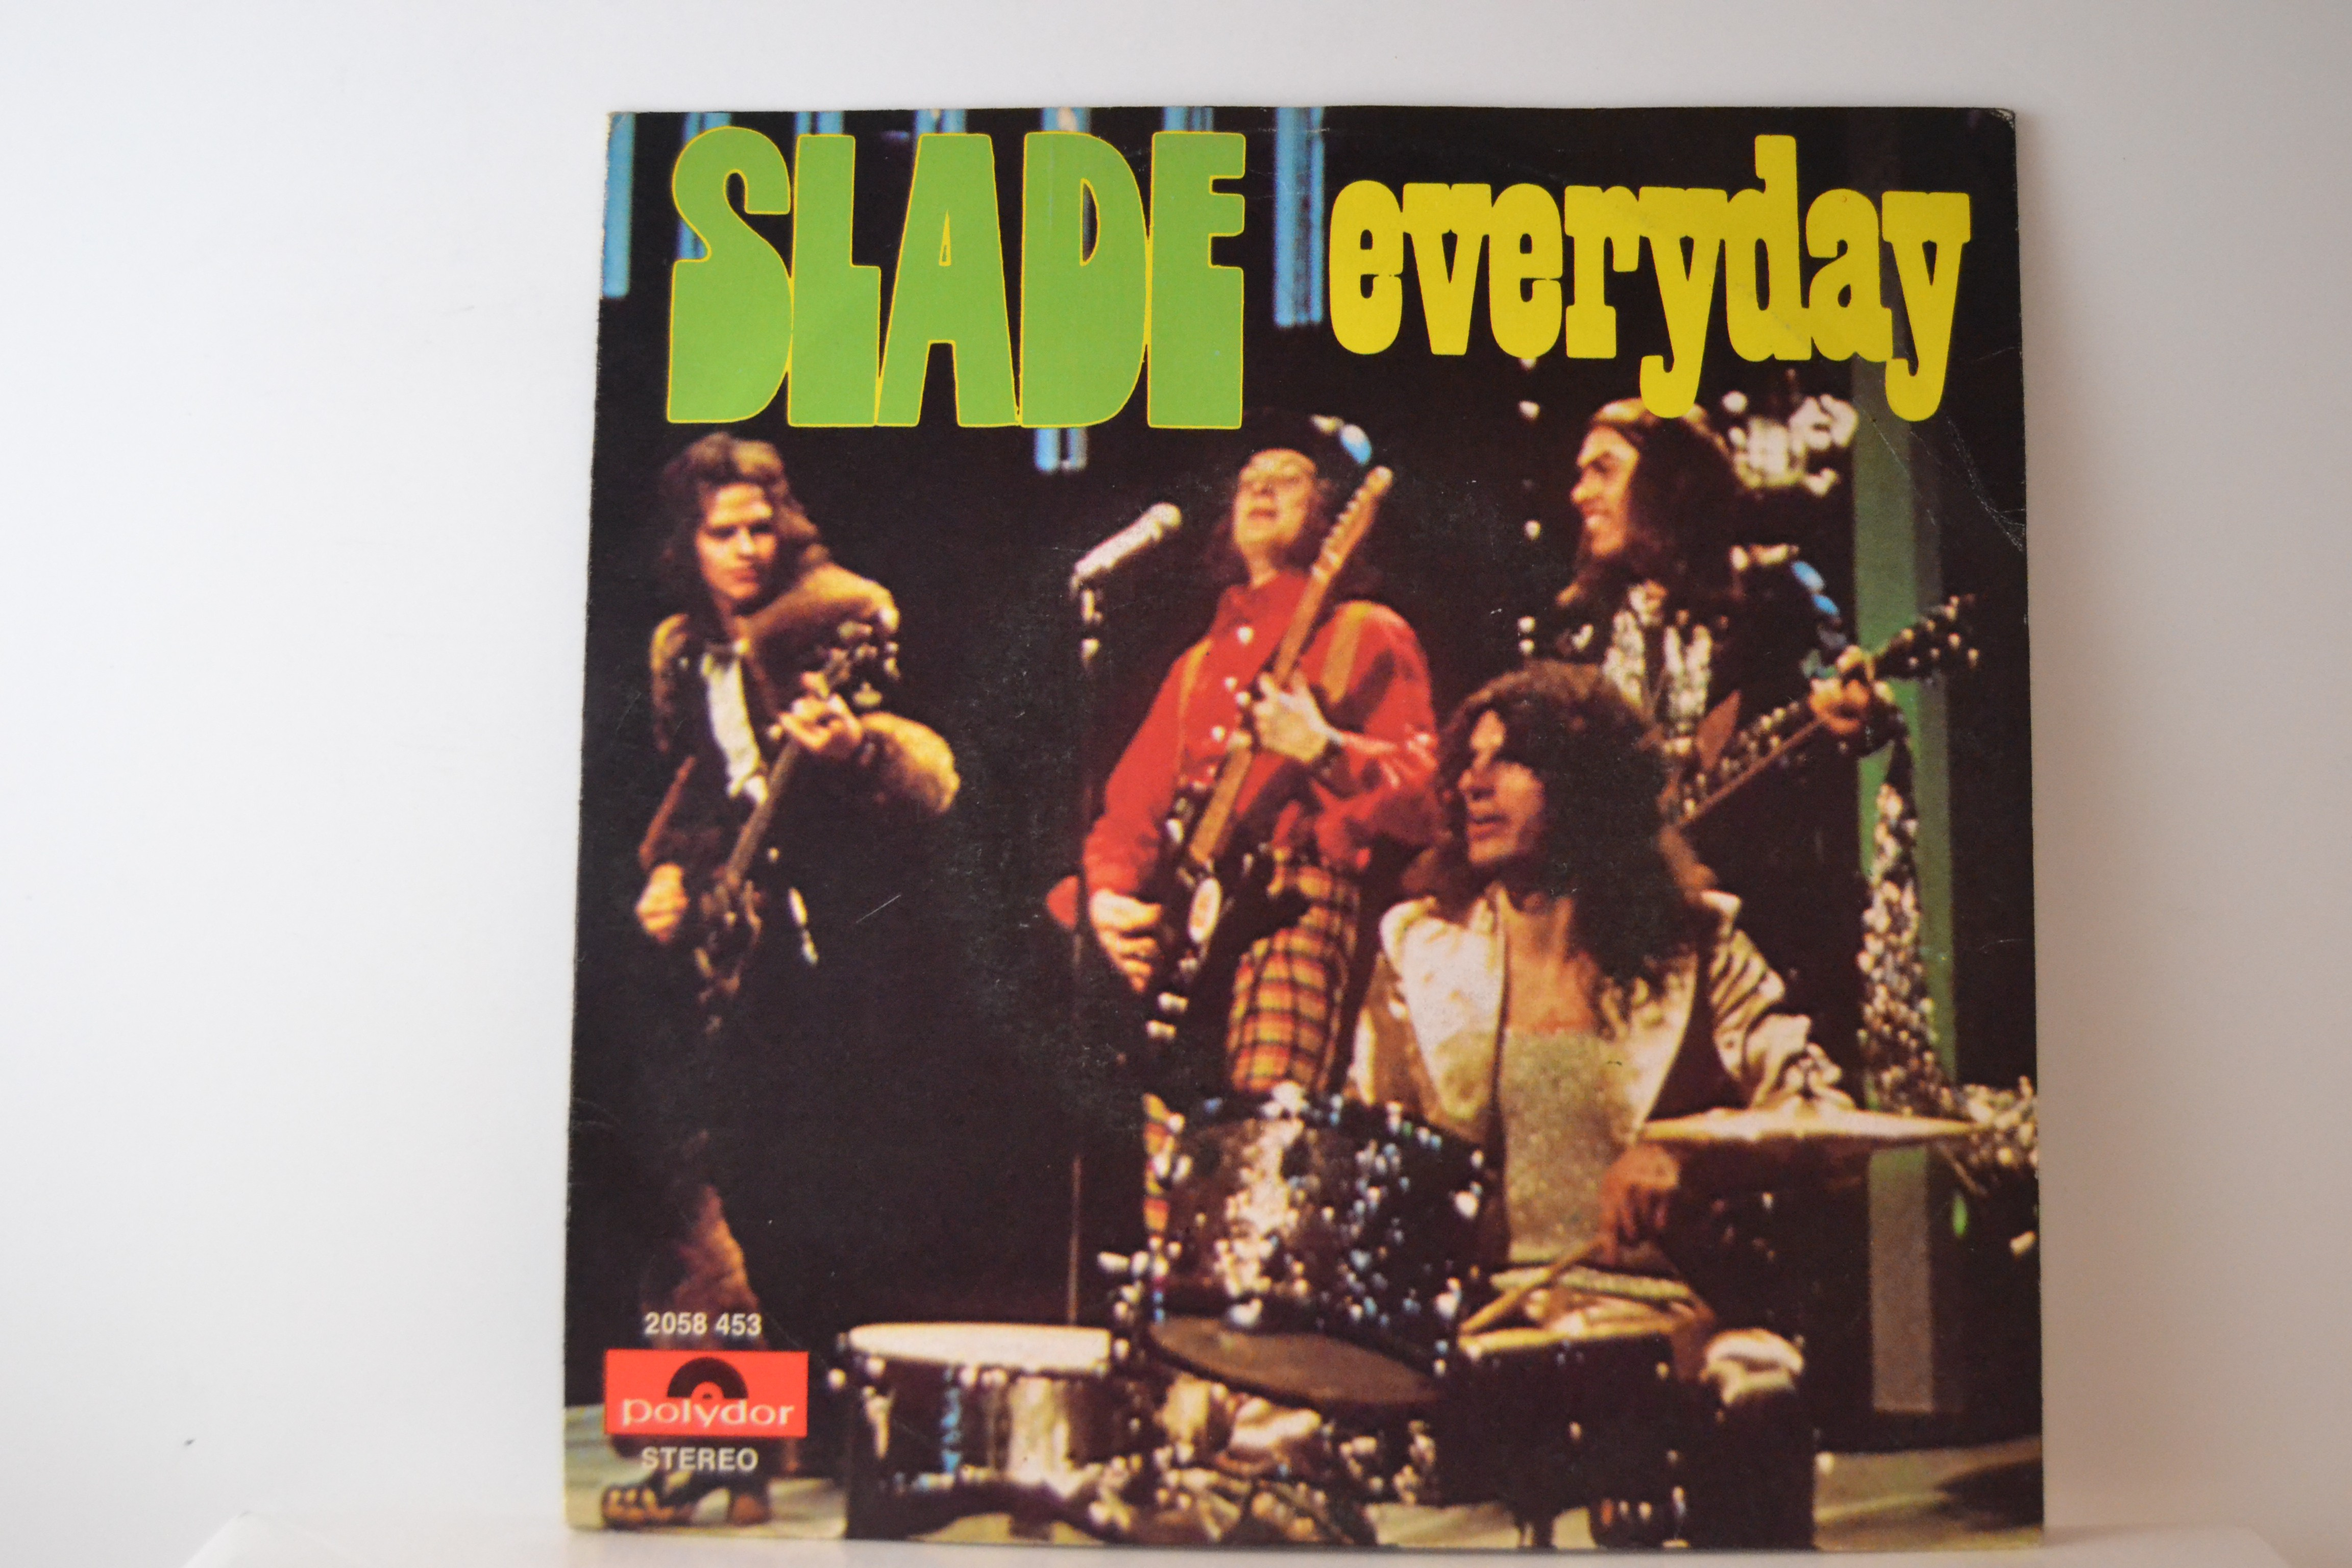 SLADE : Everyday / Good time gals